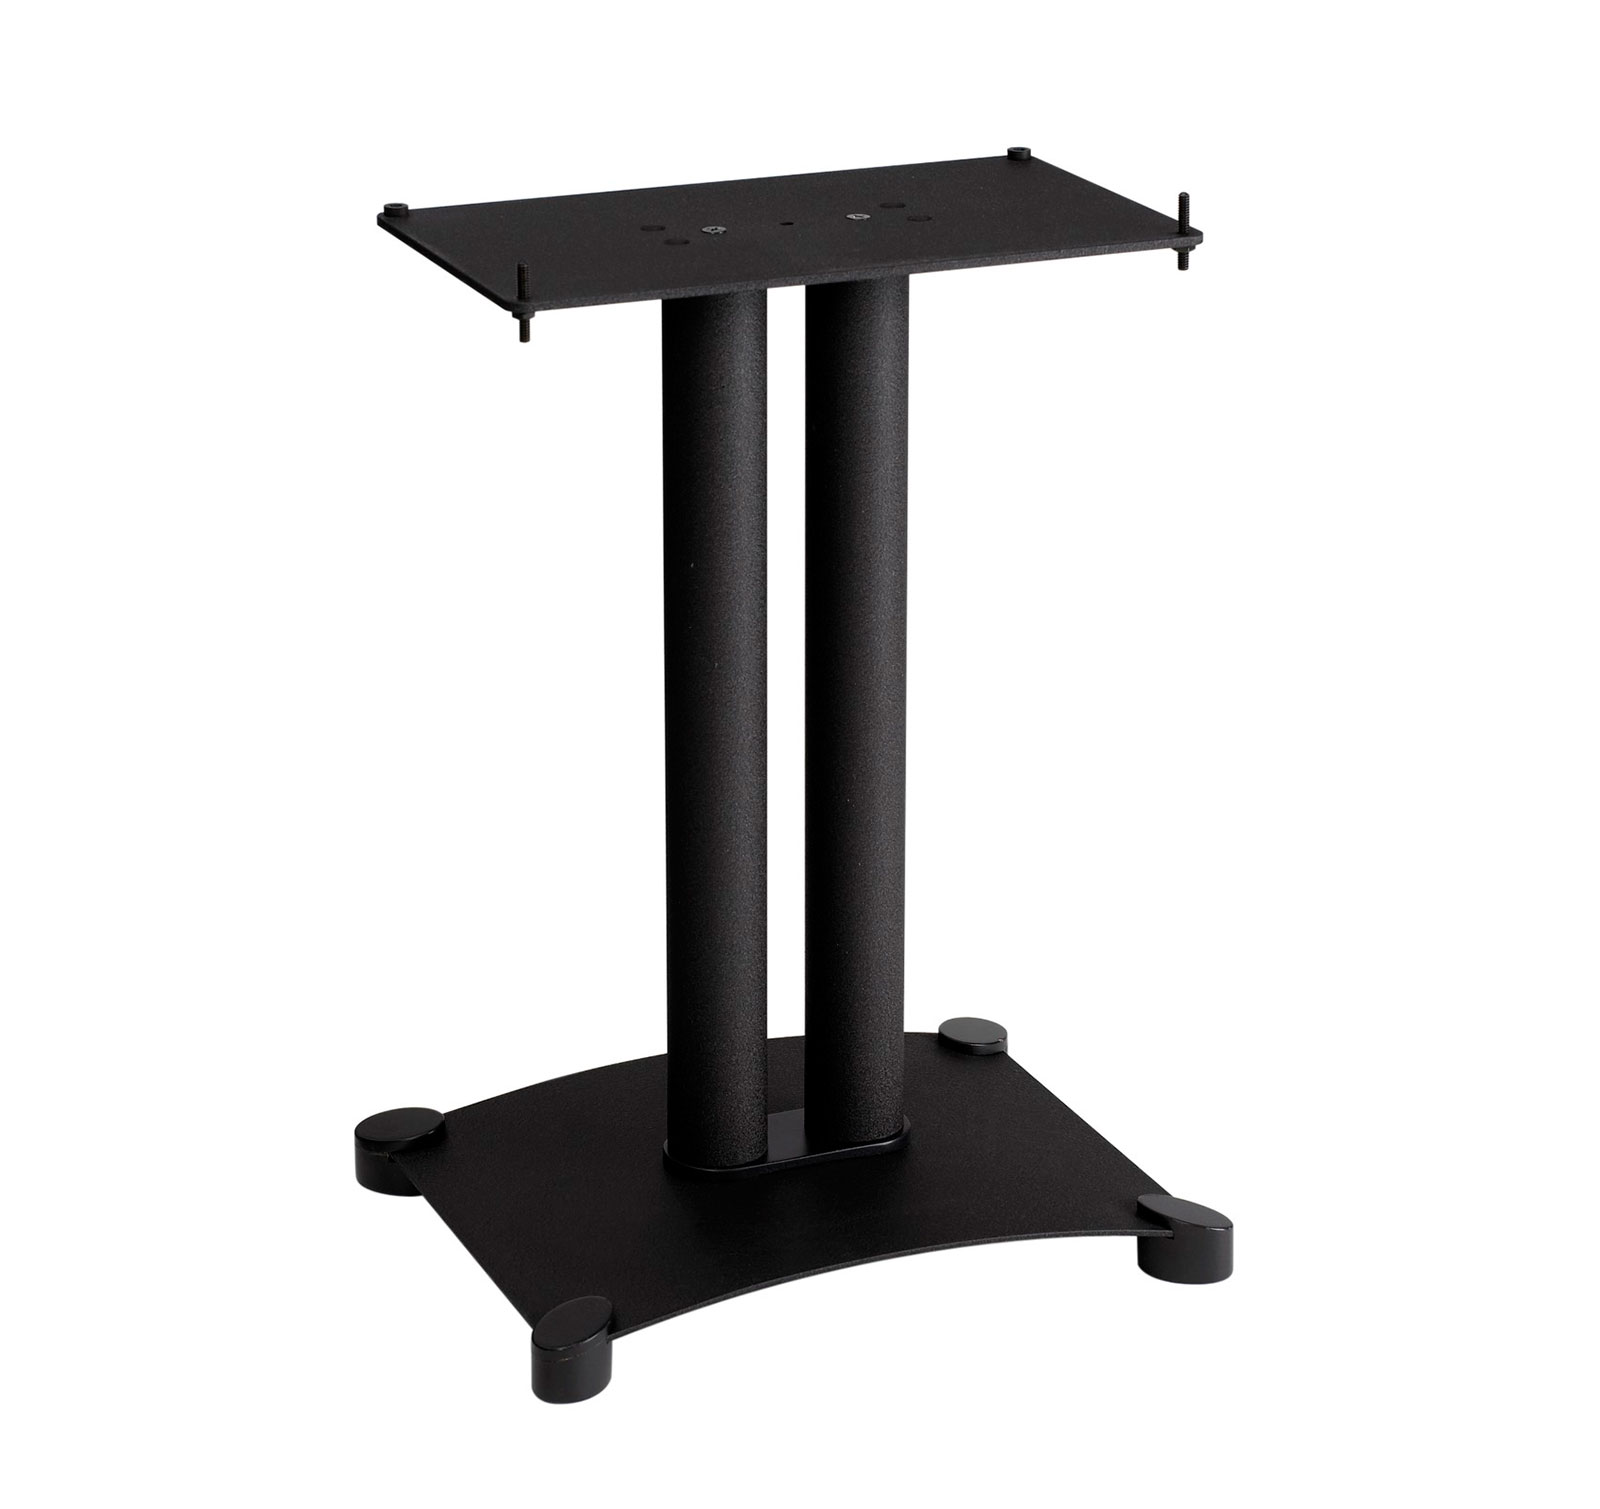 Sanus SFC22B1 Black Center Channel Speaker Stand by Sanus